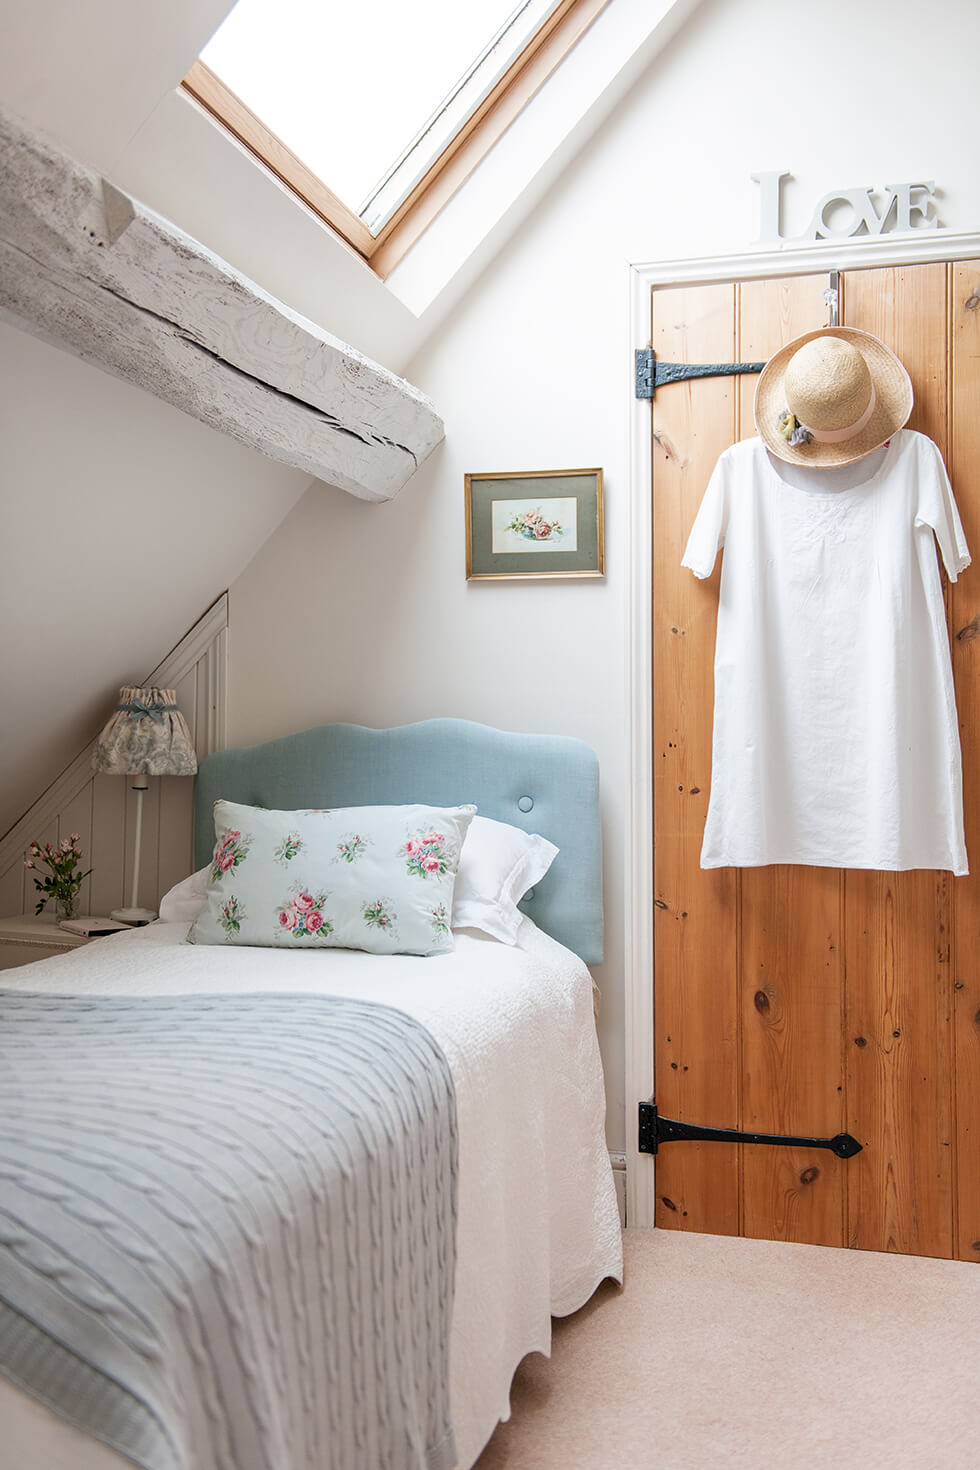 Very Narrow Bedroom Ideas Making the Most of an A-Frame Design